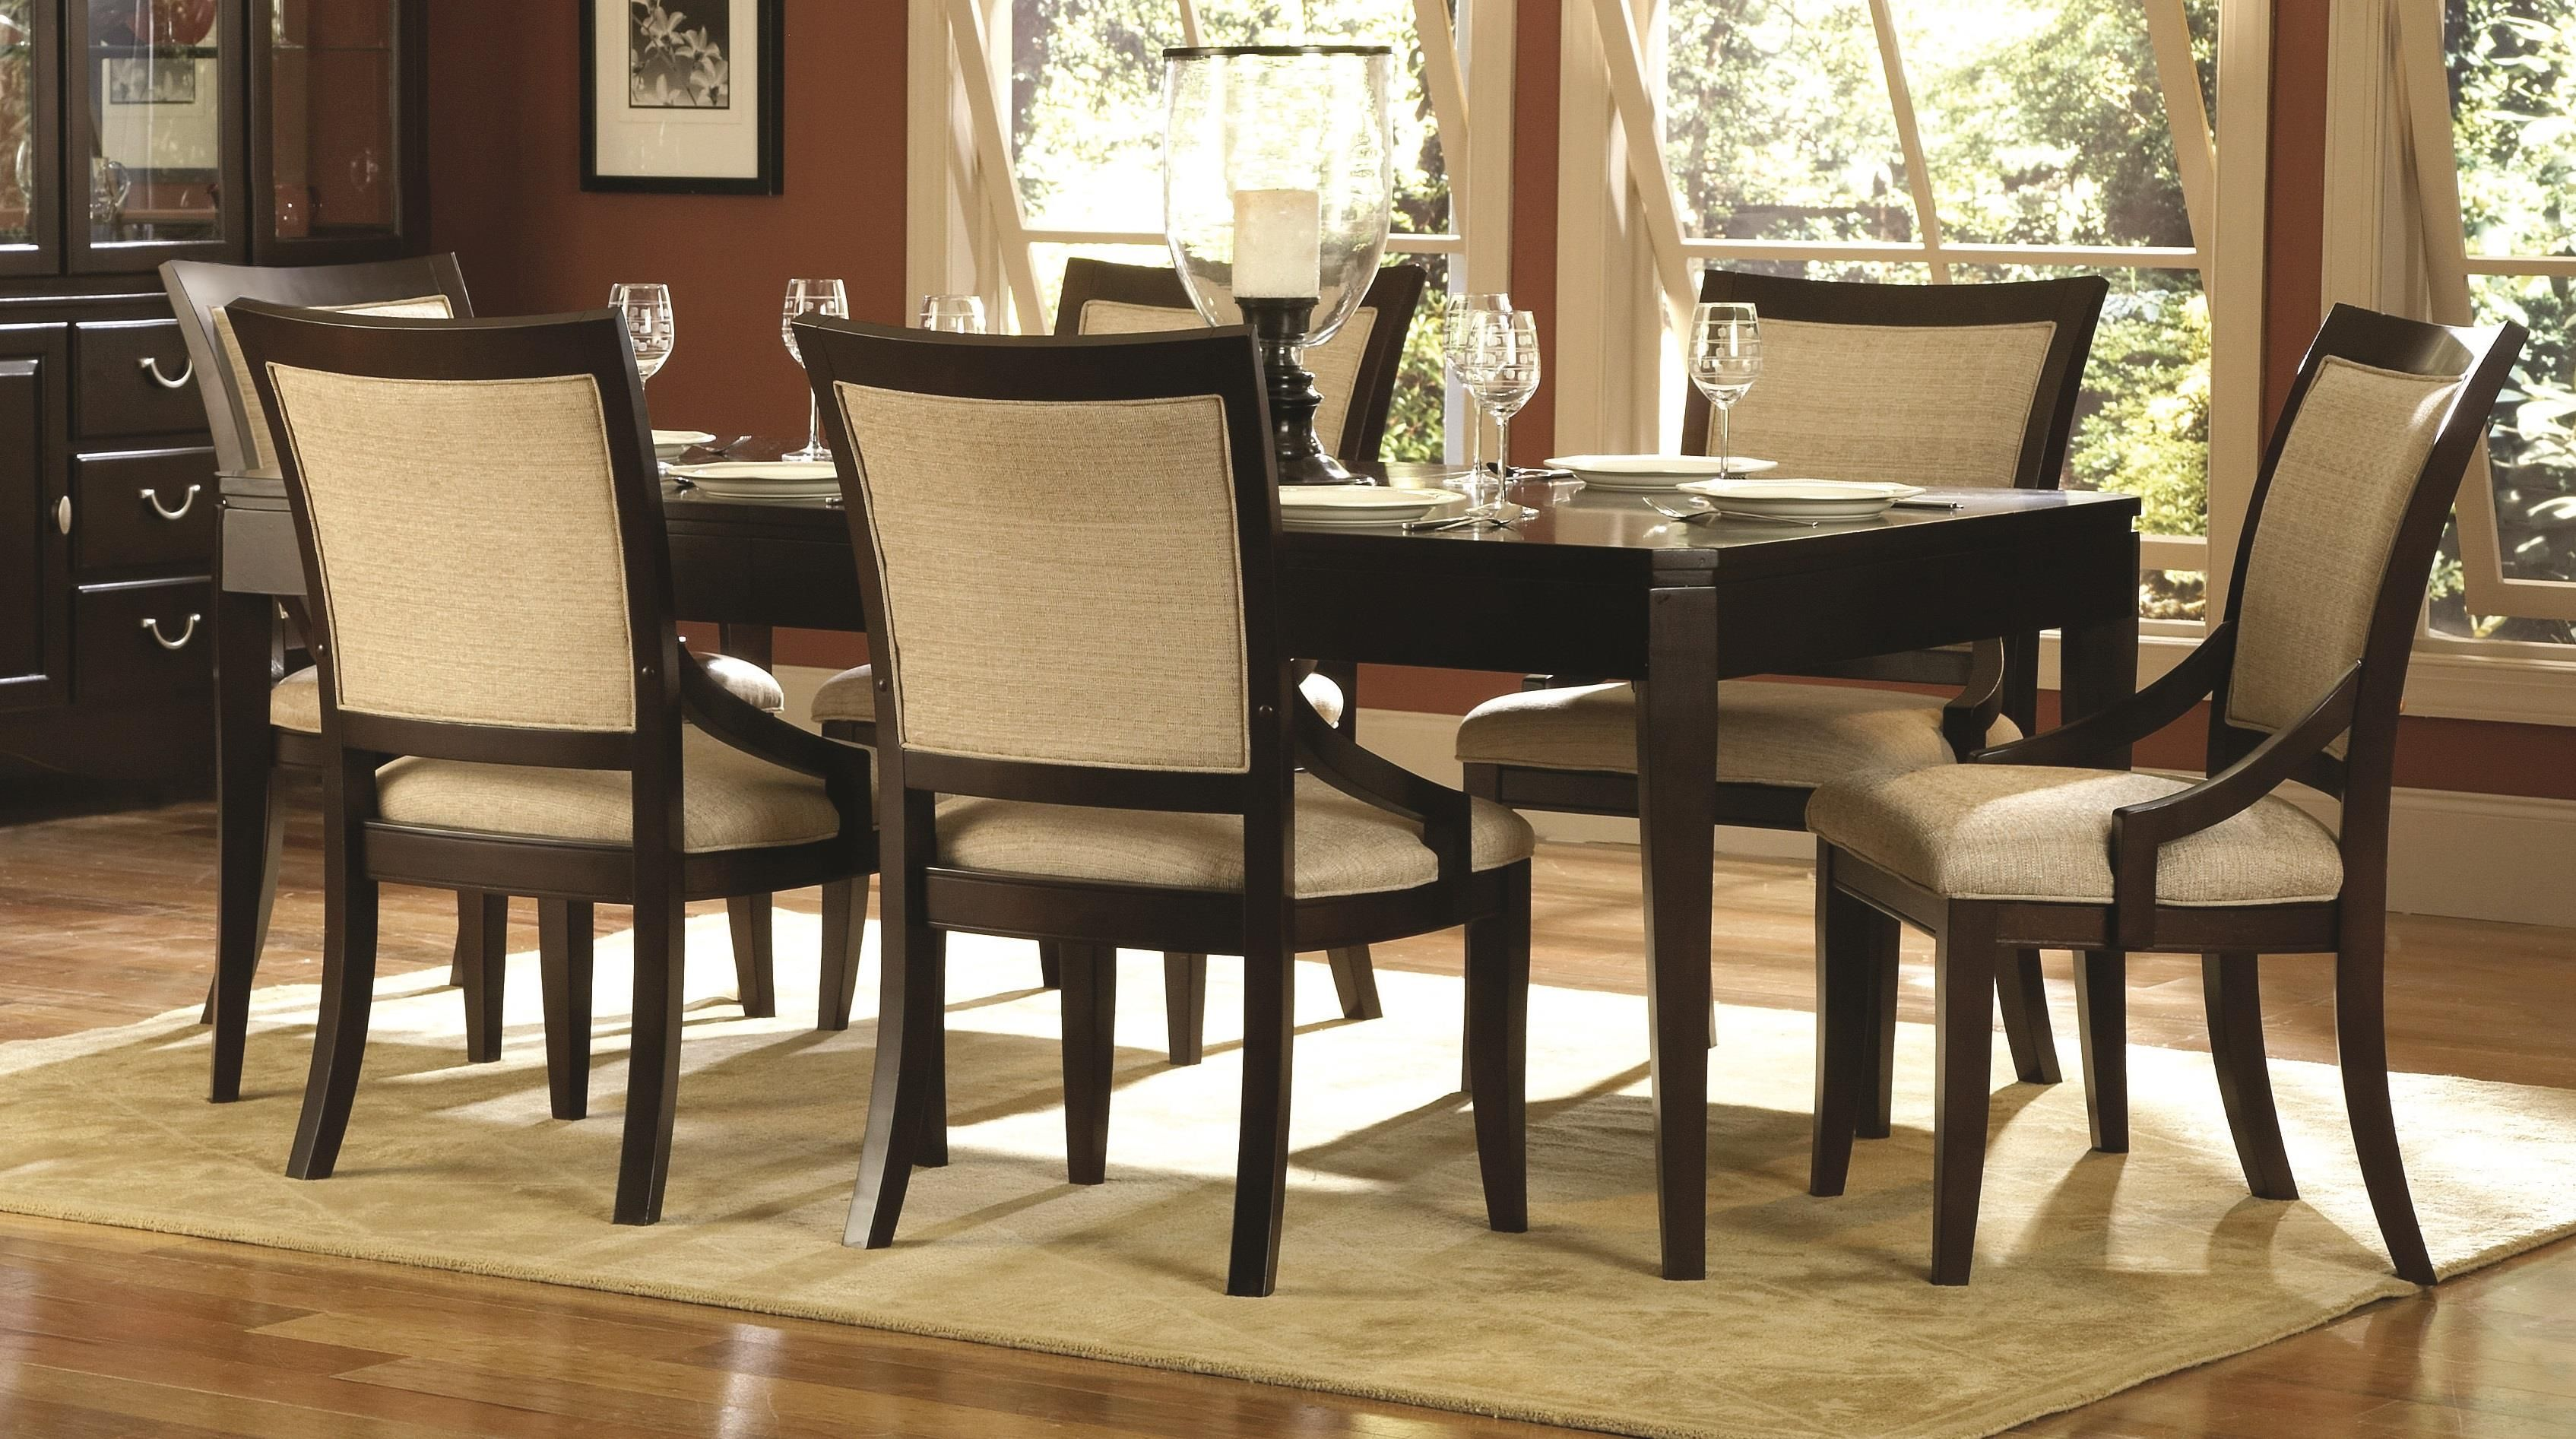 Great Dining Table Sets Costco Interior Design Bedroom Small